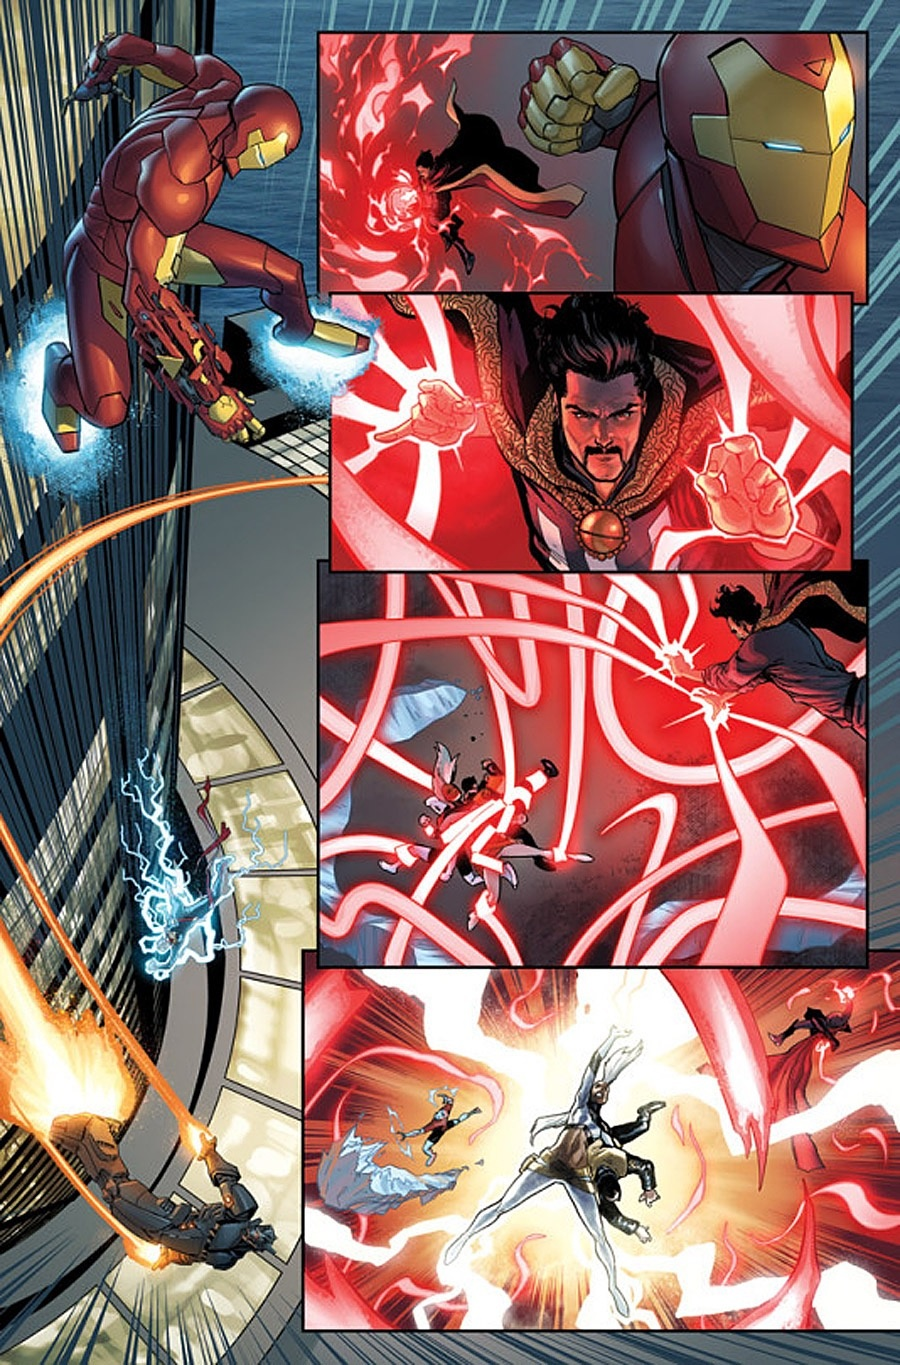 What is the difference in the powers of Doctor Strange and